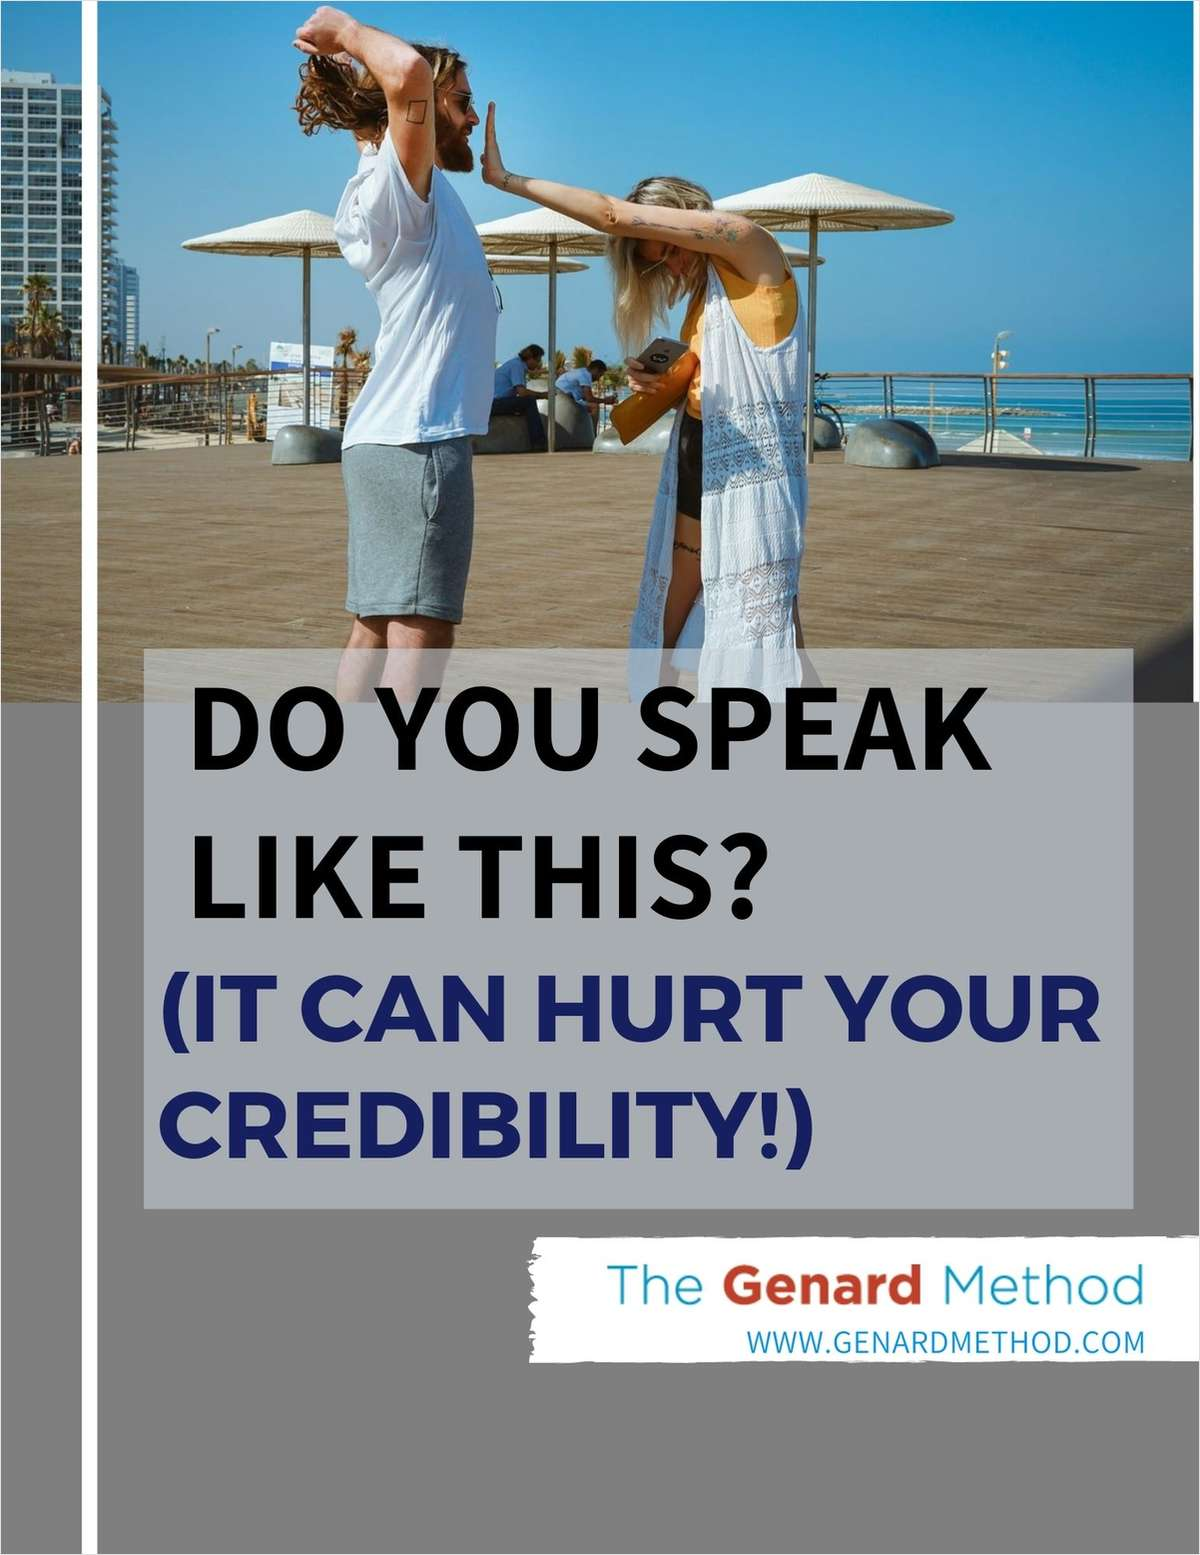 Do You Speak Like This? (It Can Hurt Your Credibility!)